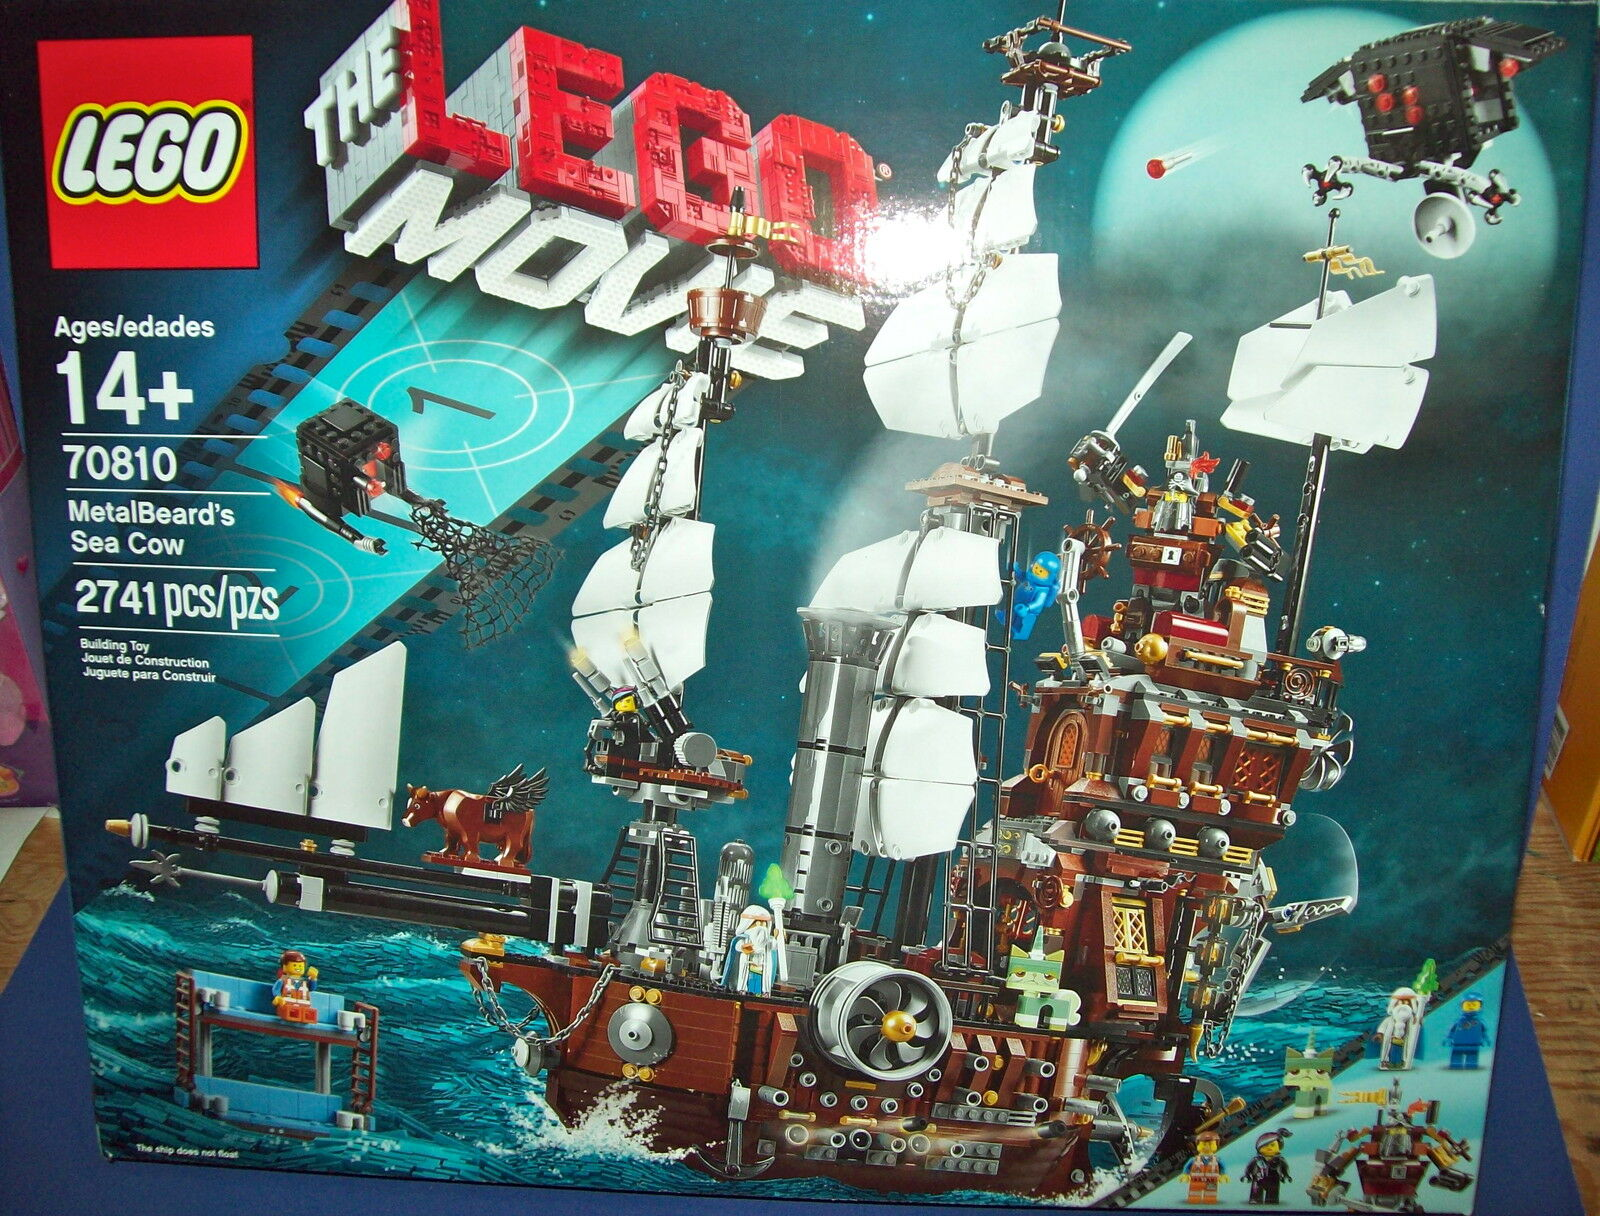 LEGO 70810 The Lego Movie Metalbeard's Sea Cow Ship Boat HTF - Retired